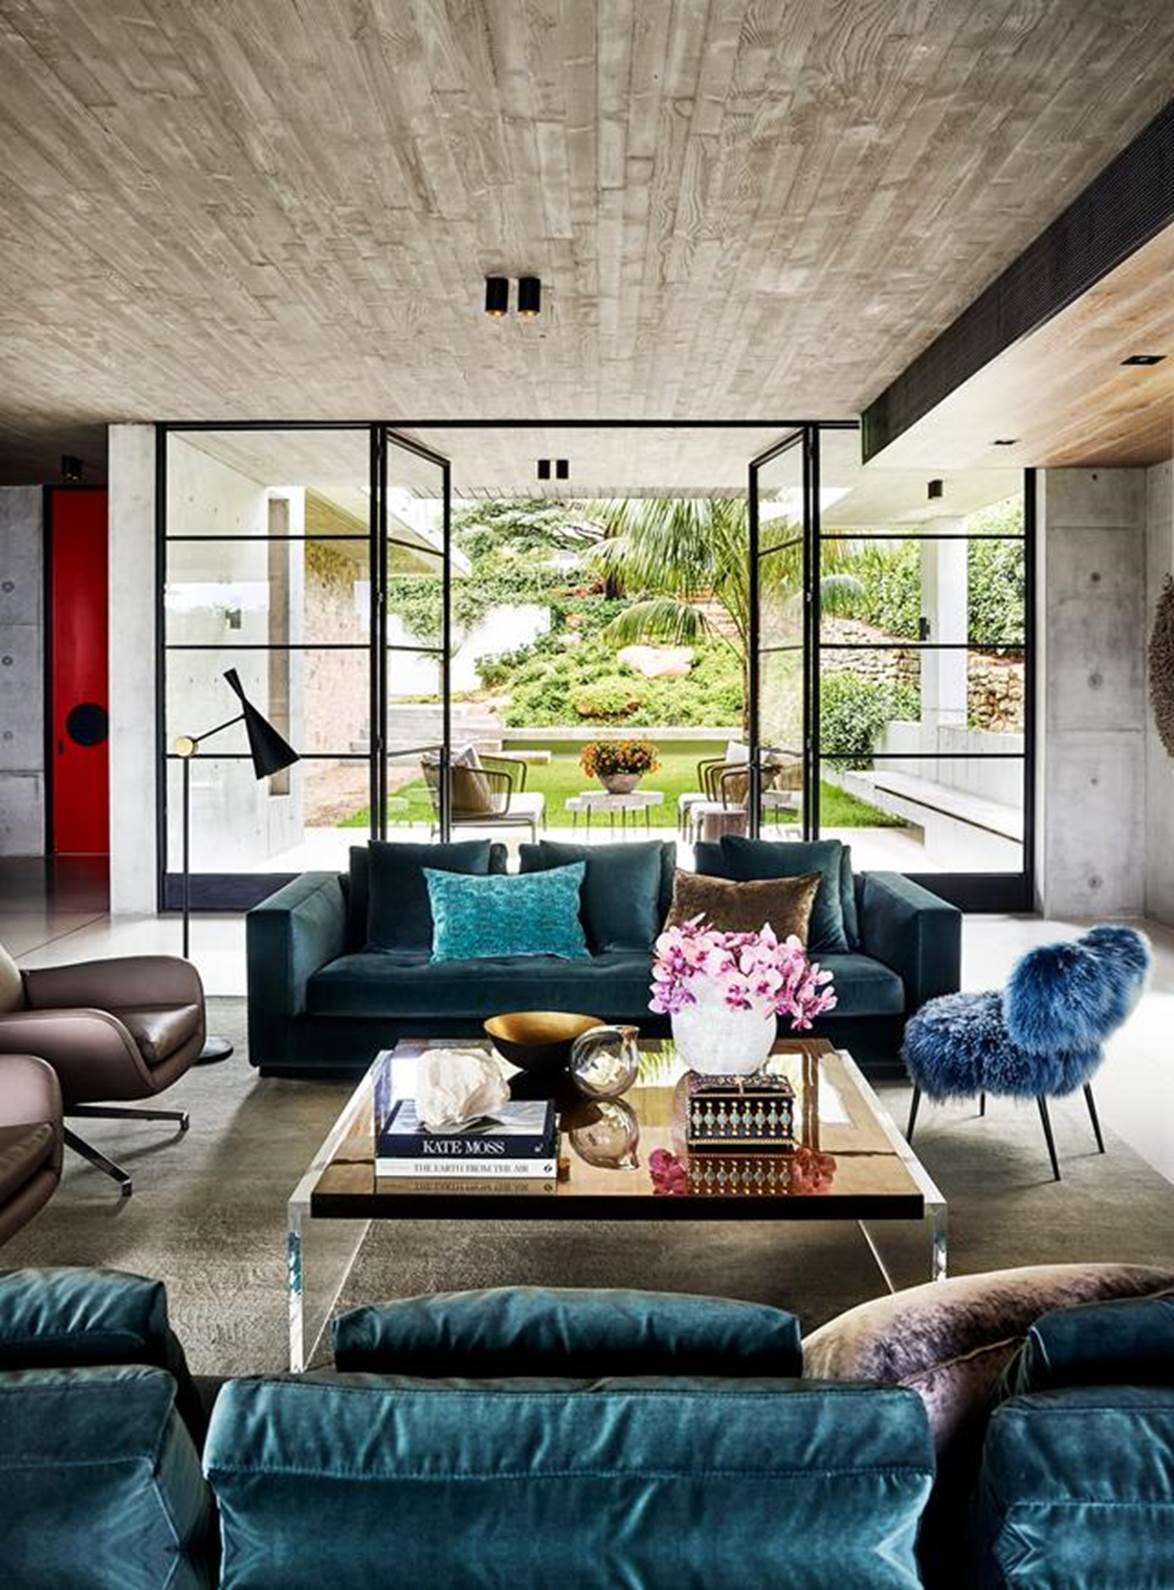 """Throughout this [modernist home](https://www.homestolove.com.au/a-modernist-home-with-a-maximalist-interior-6555